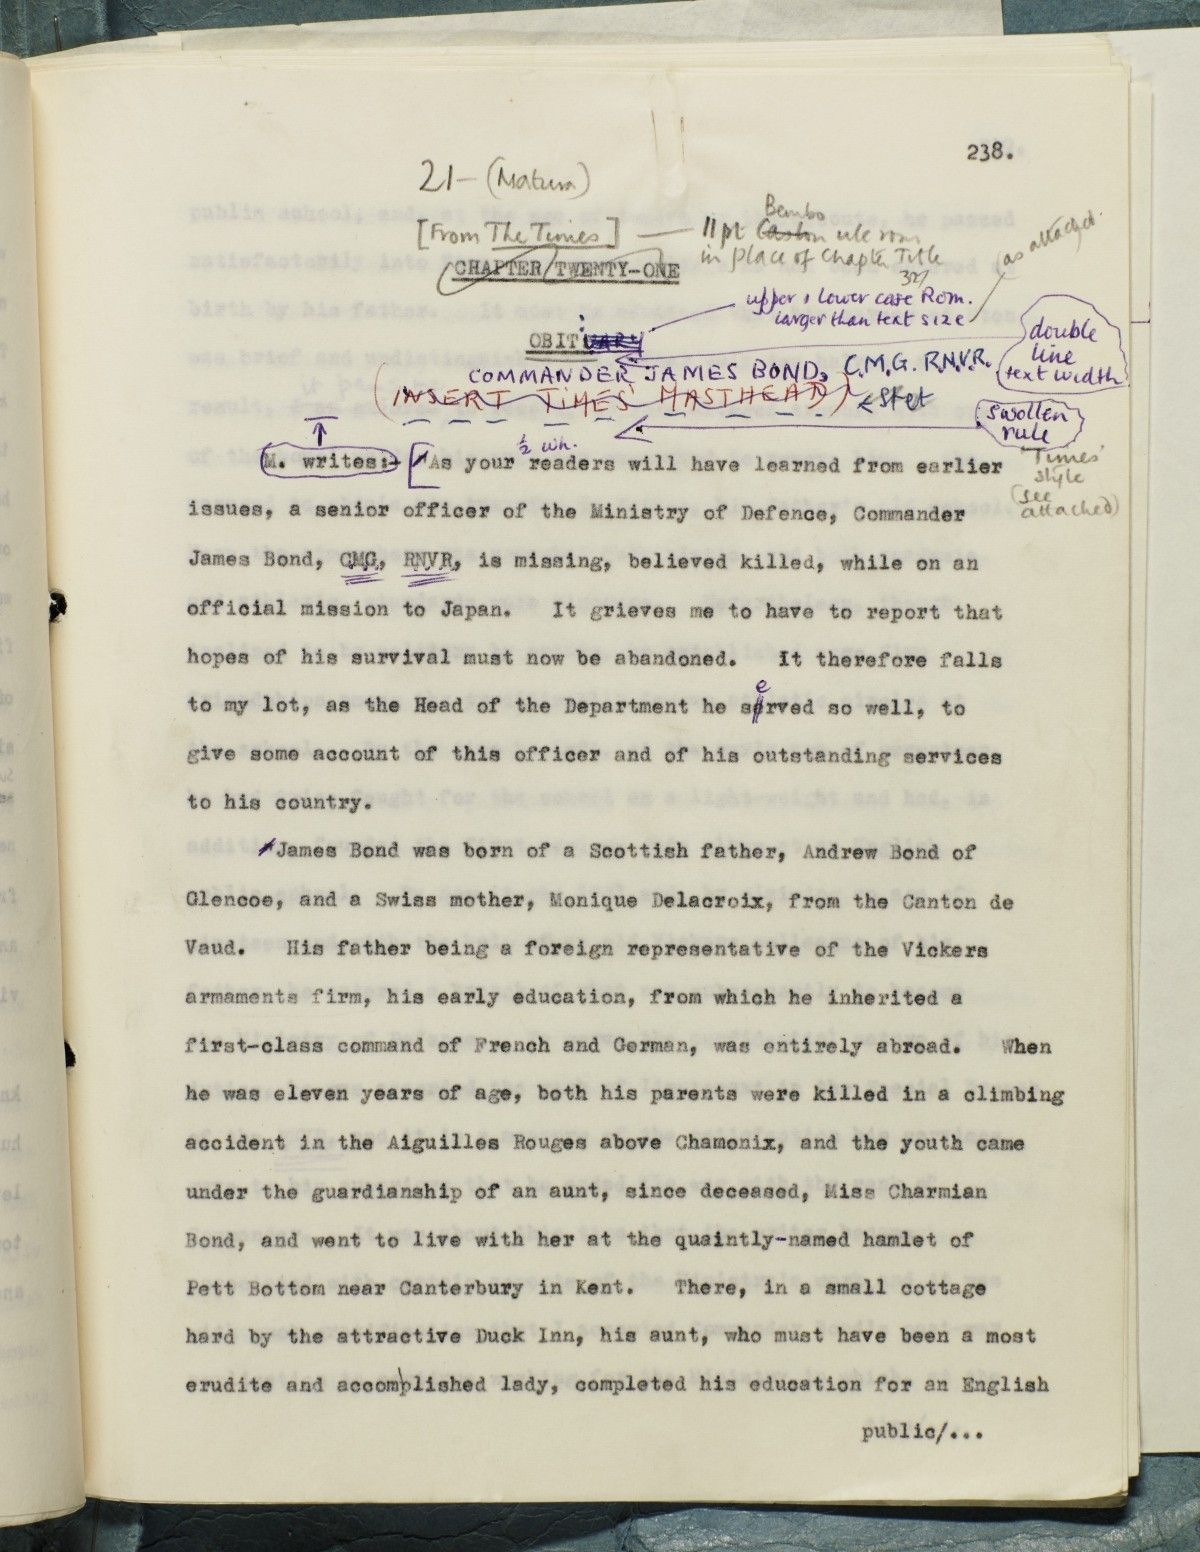 Ian Fleming's final notes on James Bond from the typescript of 'You Only Live Twice'